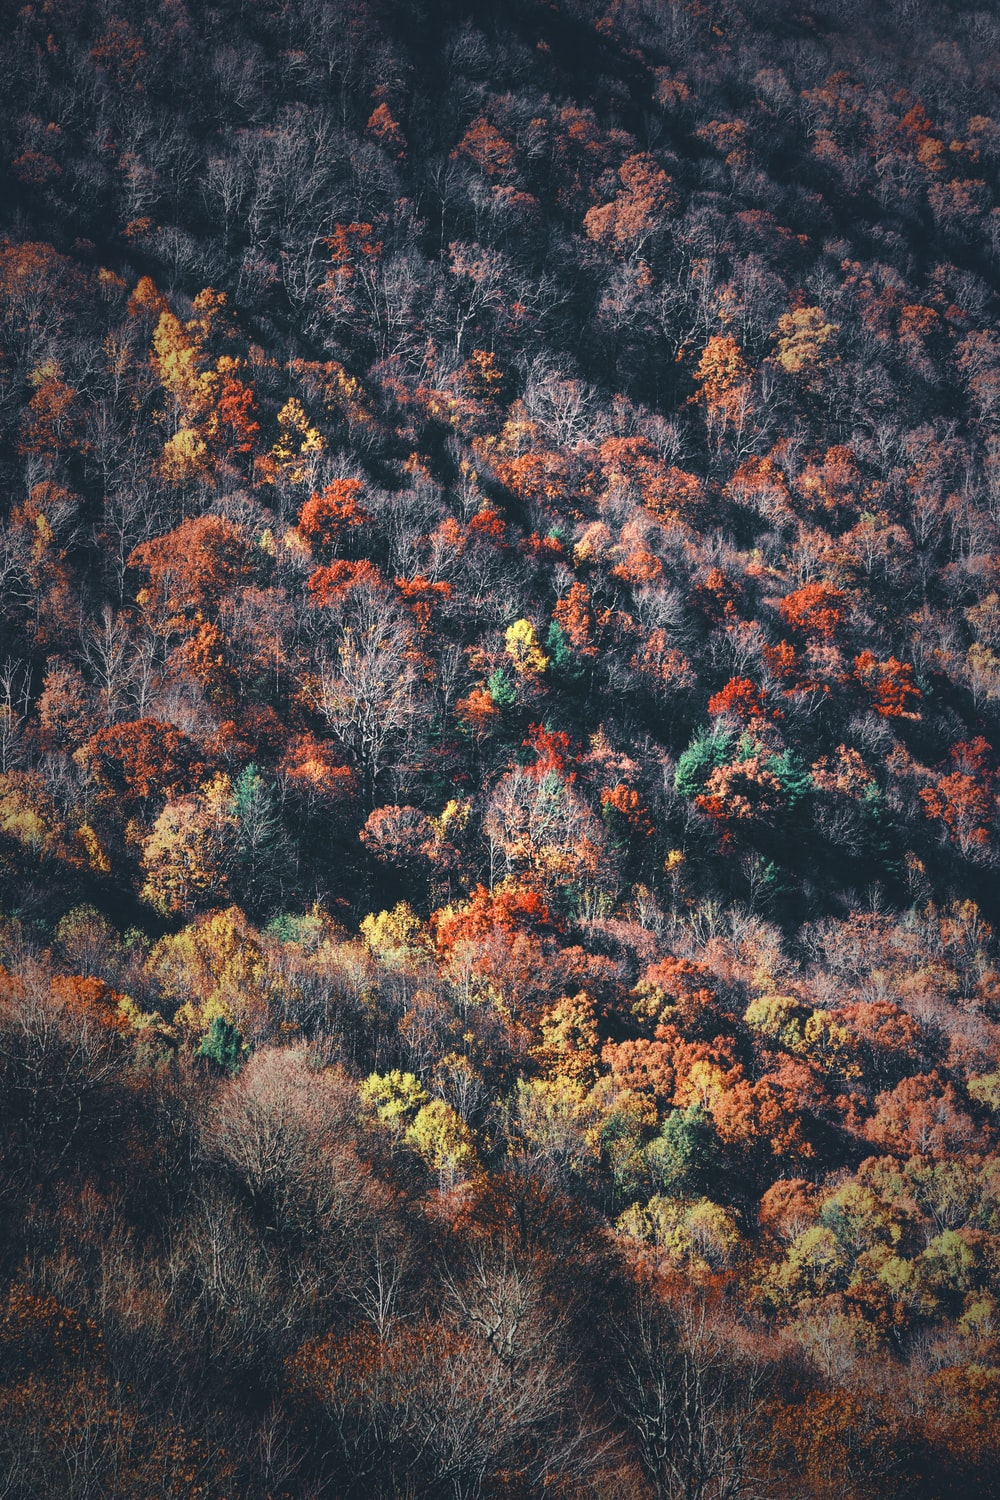 bird's-eye view photography of forest